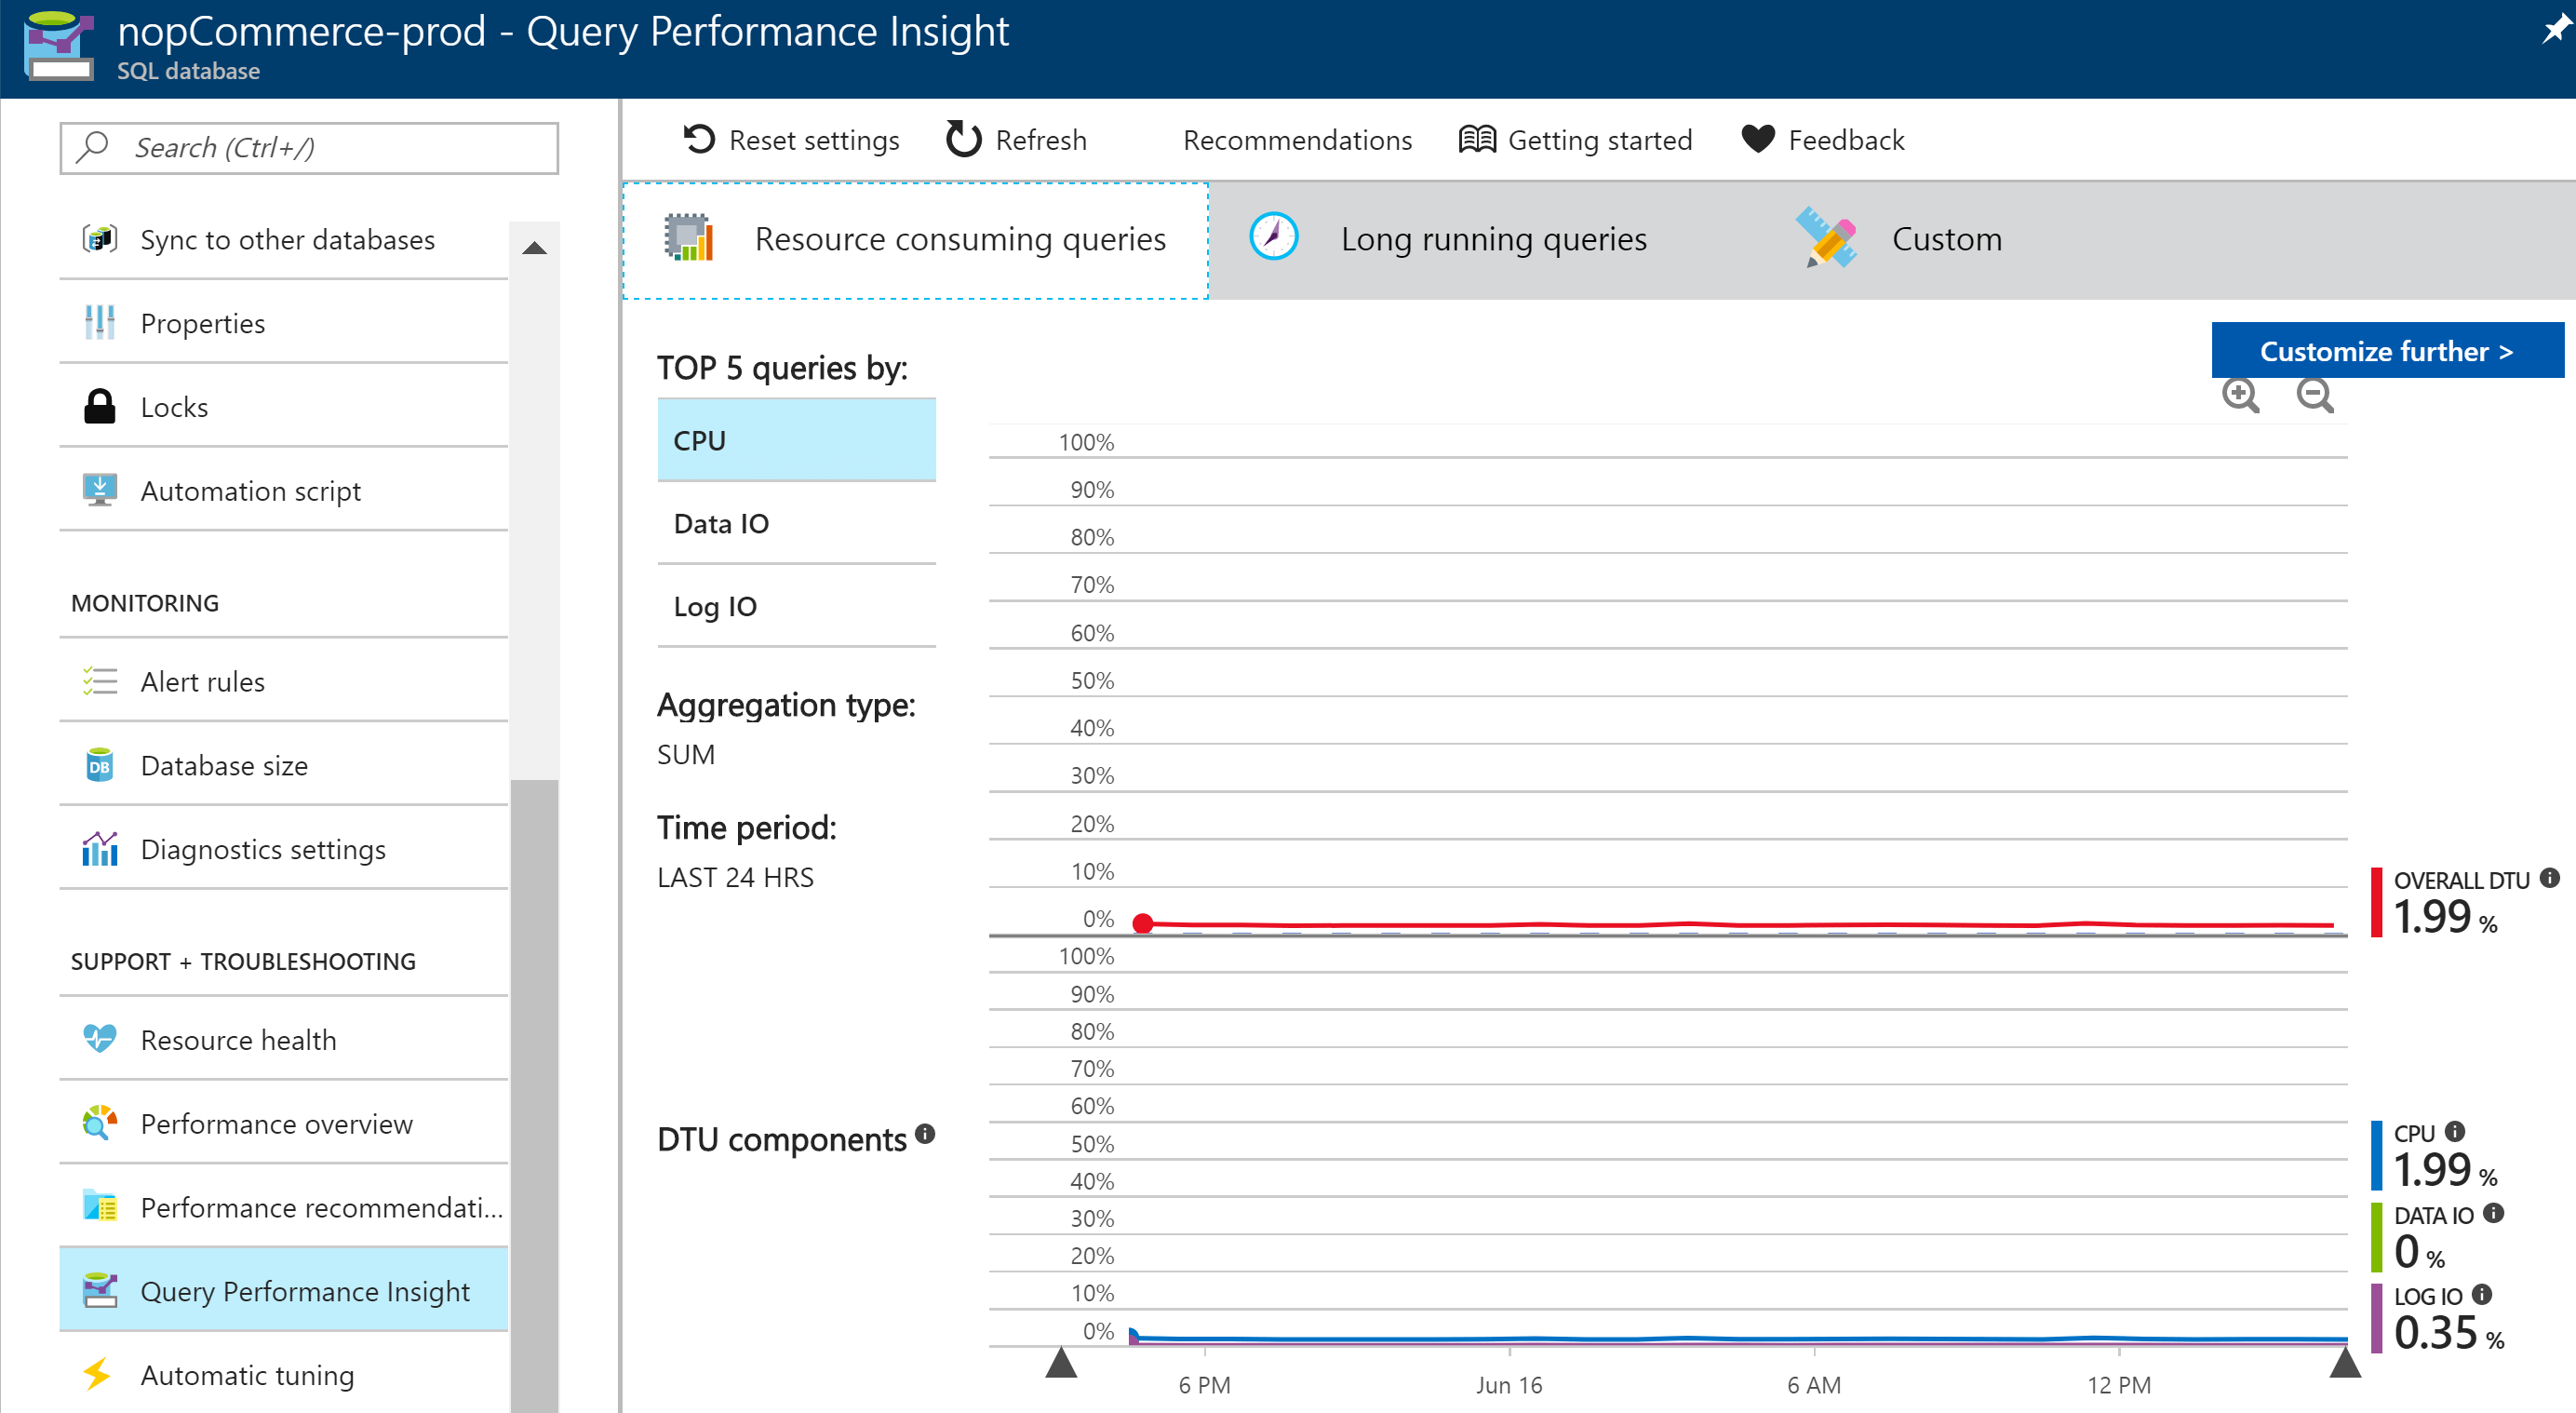 In the screenshot you can see how SQL Azure makes it easy to use your queries that use the most CPU, Data IO, and Log IO. It is has some great basic reporting built into it.